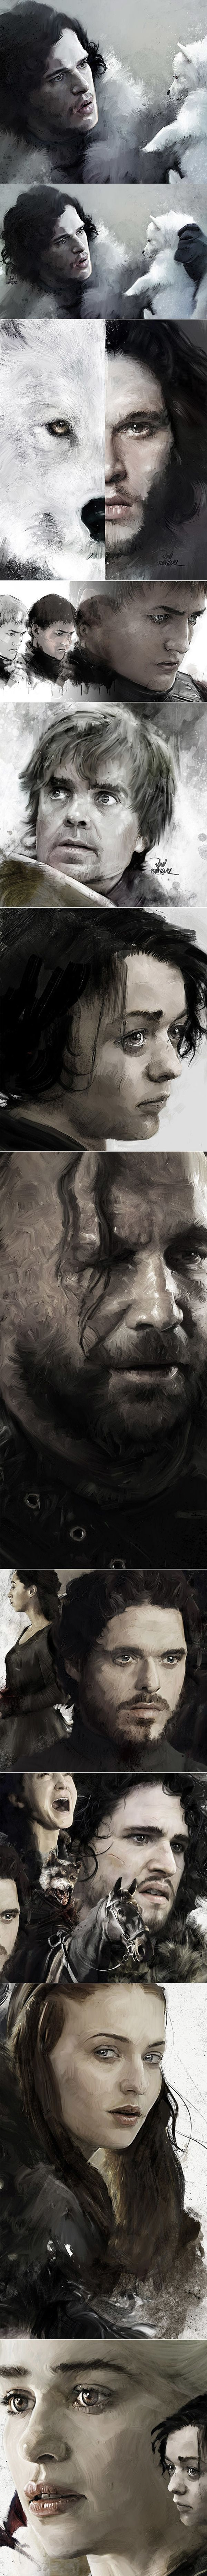 Artwork 'Game Of Thrones' by Vlad Rodriguez